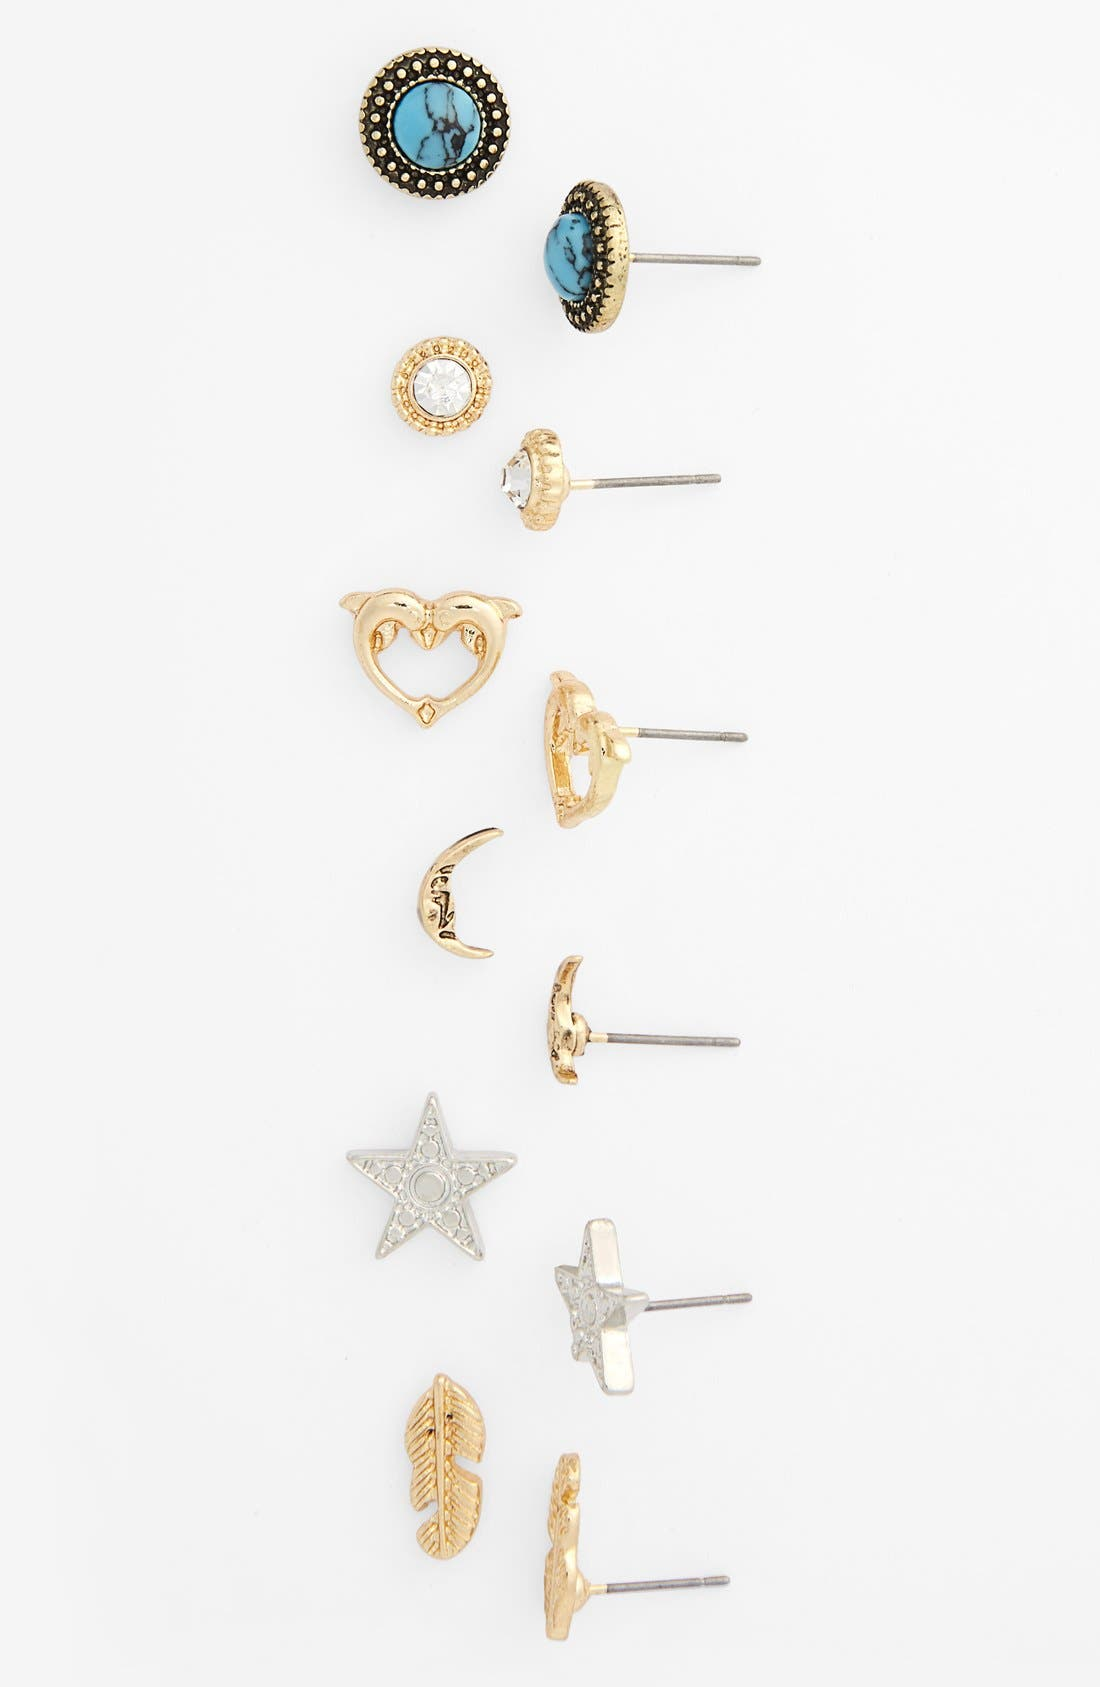 Main Image - Topshop Mixed Stud Earrings (Set of 6)